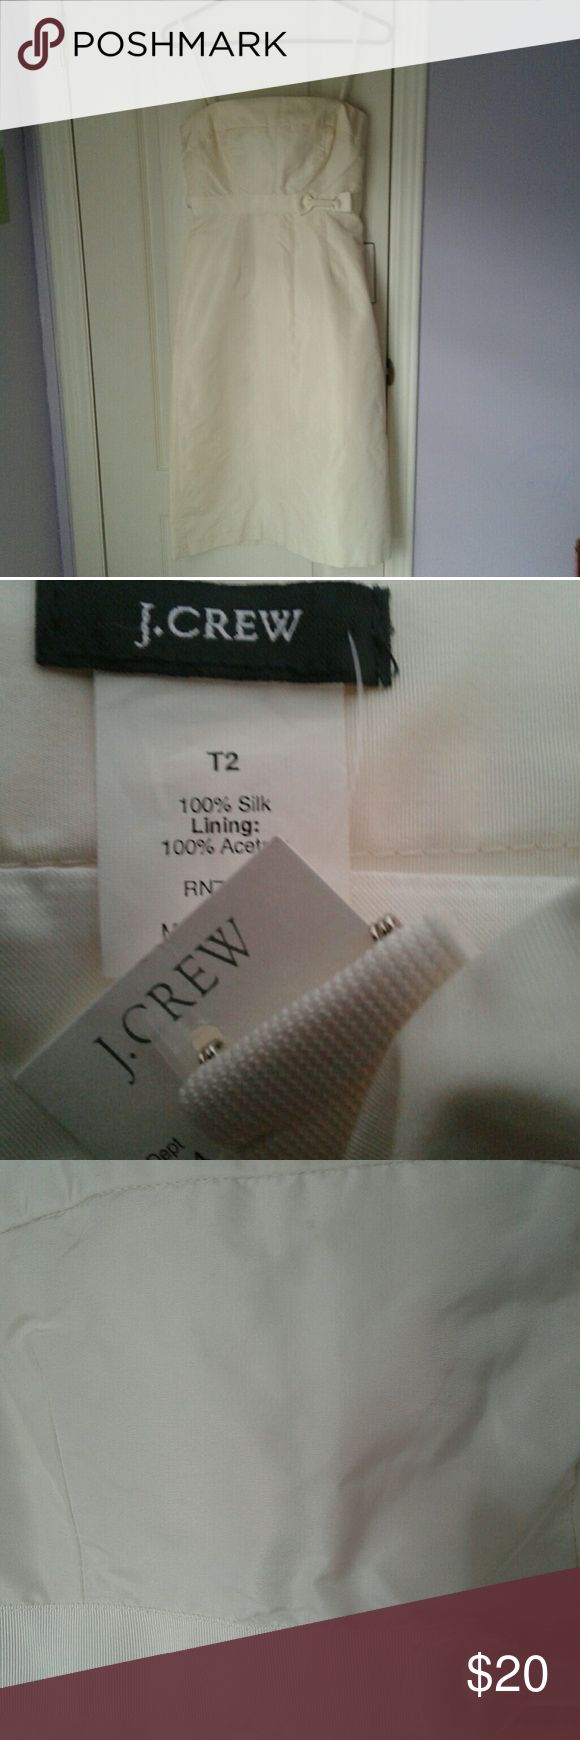 J crew cream bow dress Women's brand new w tags J crew cream bow dress. Size tall 2. T2. Has a tiny little mark, I'm not sure what, pictured 3.   Formal semi formal J. Crew Dresses